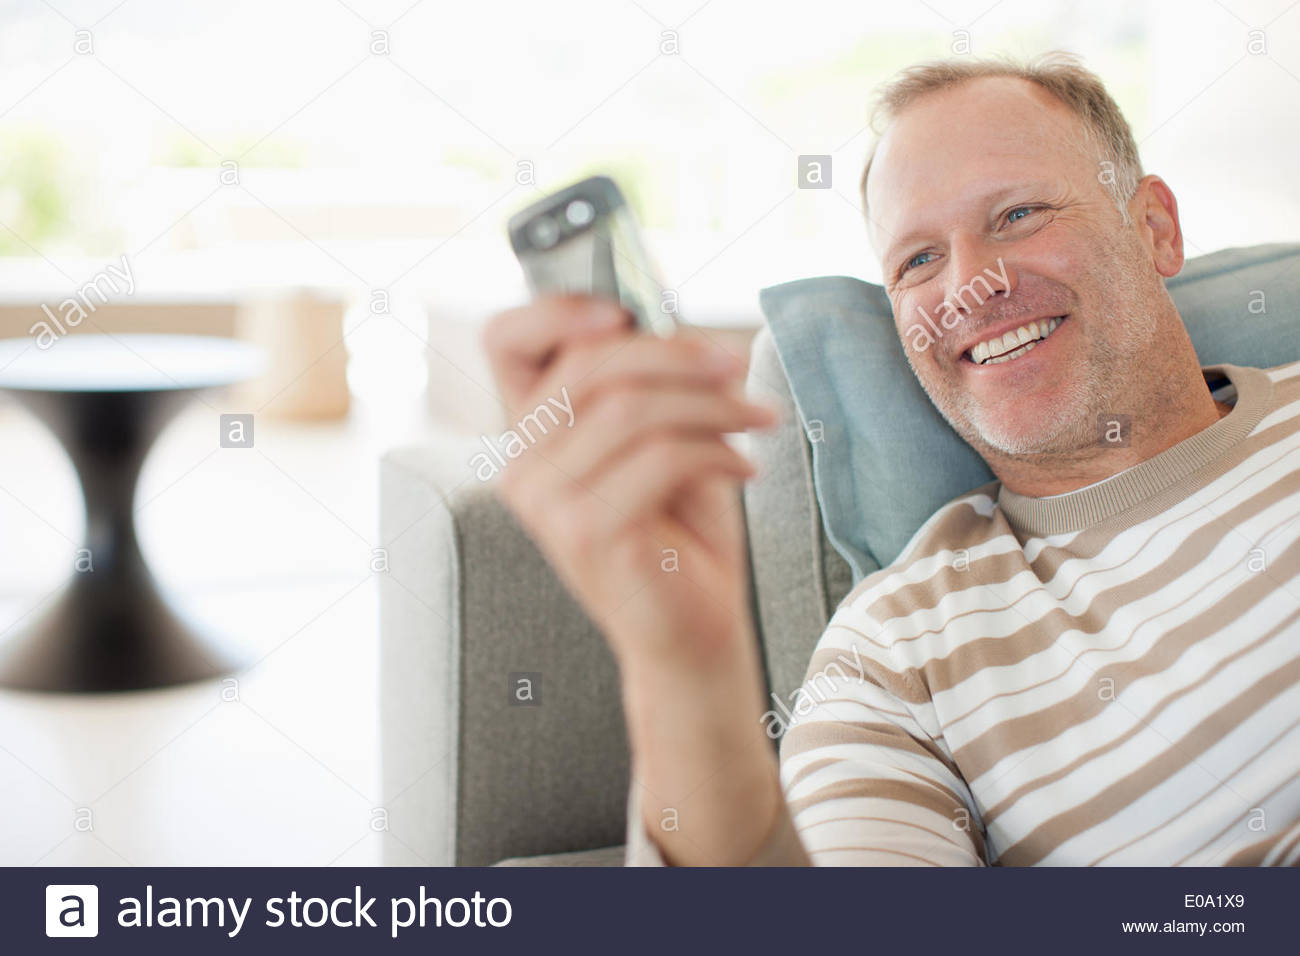 Man text messaging on cell phone Stock Photo